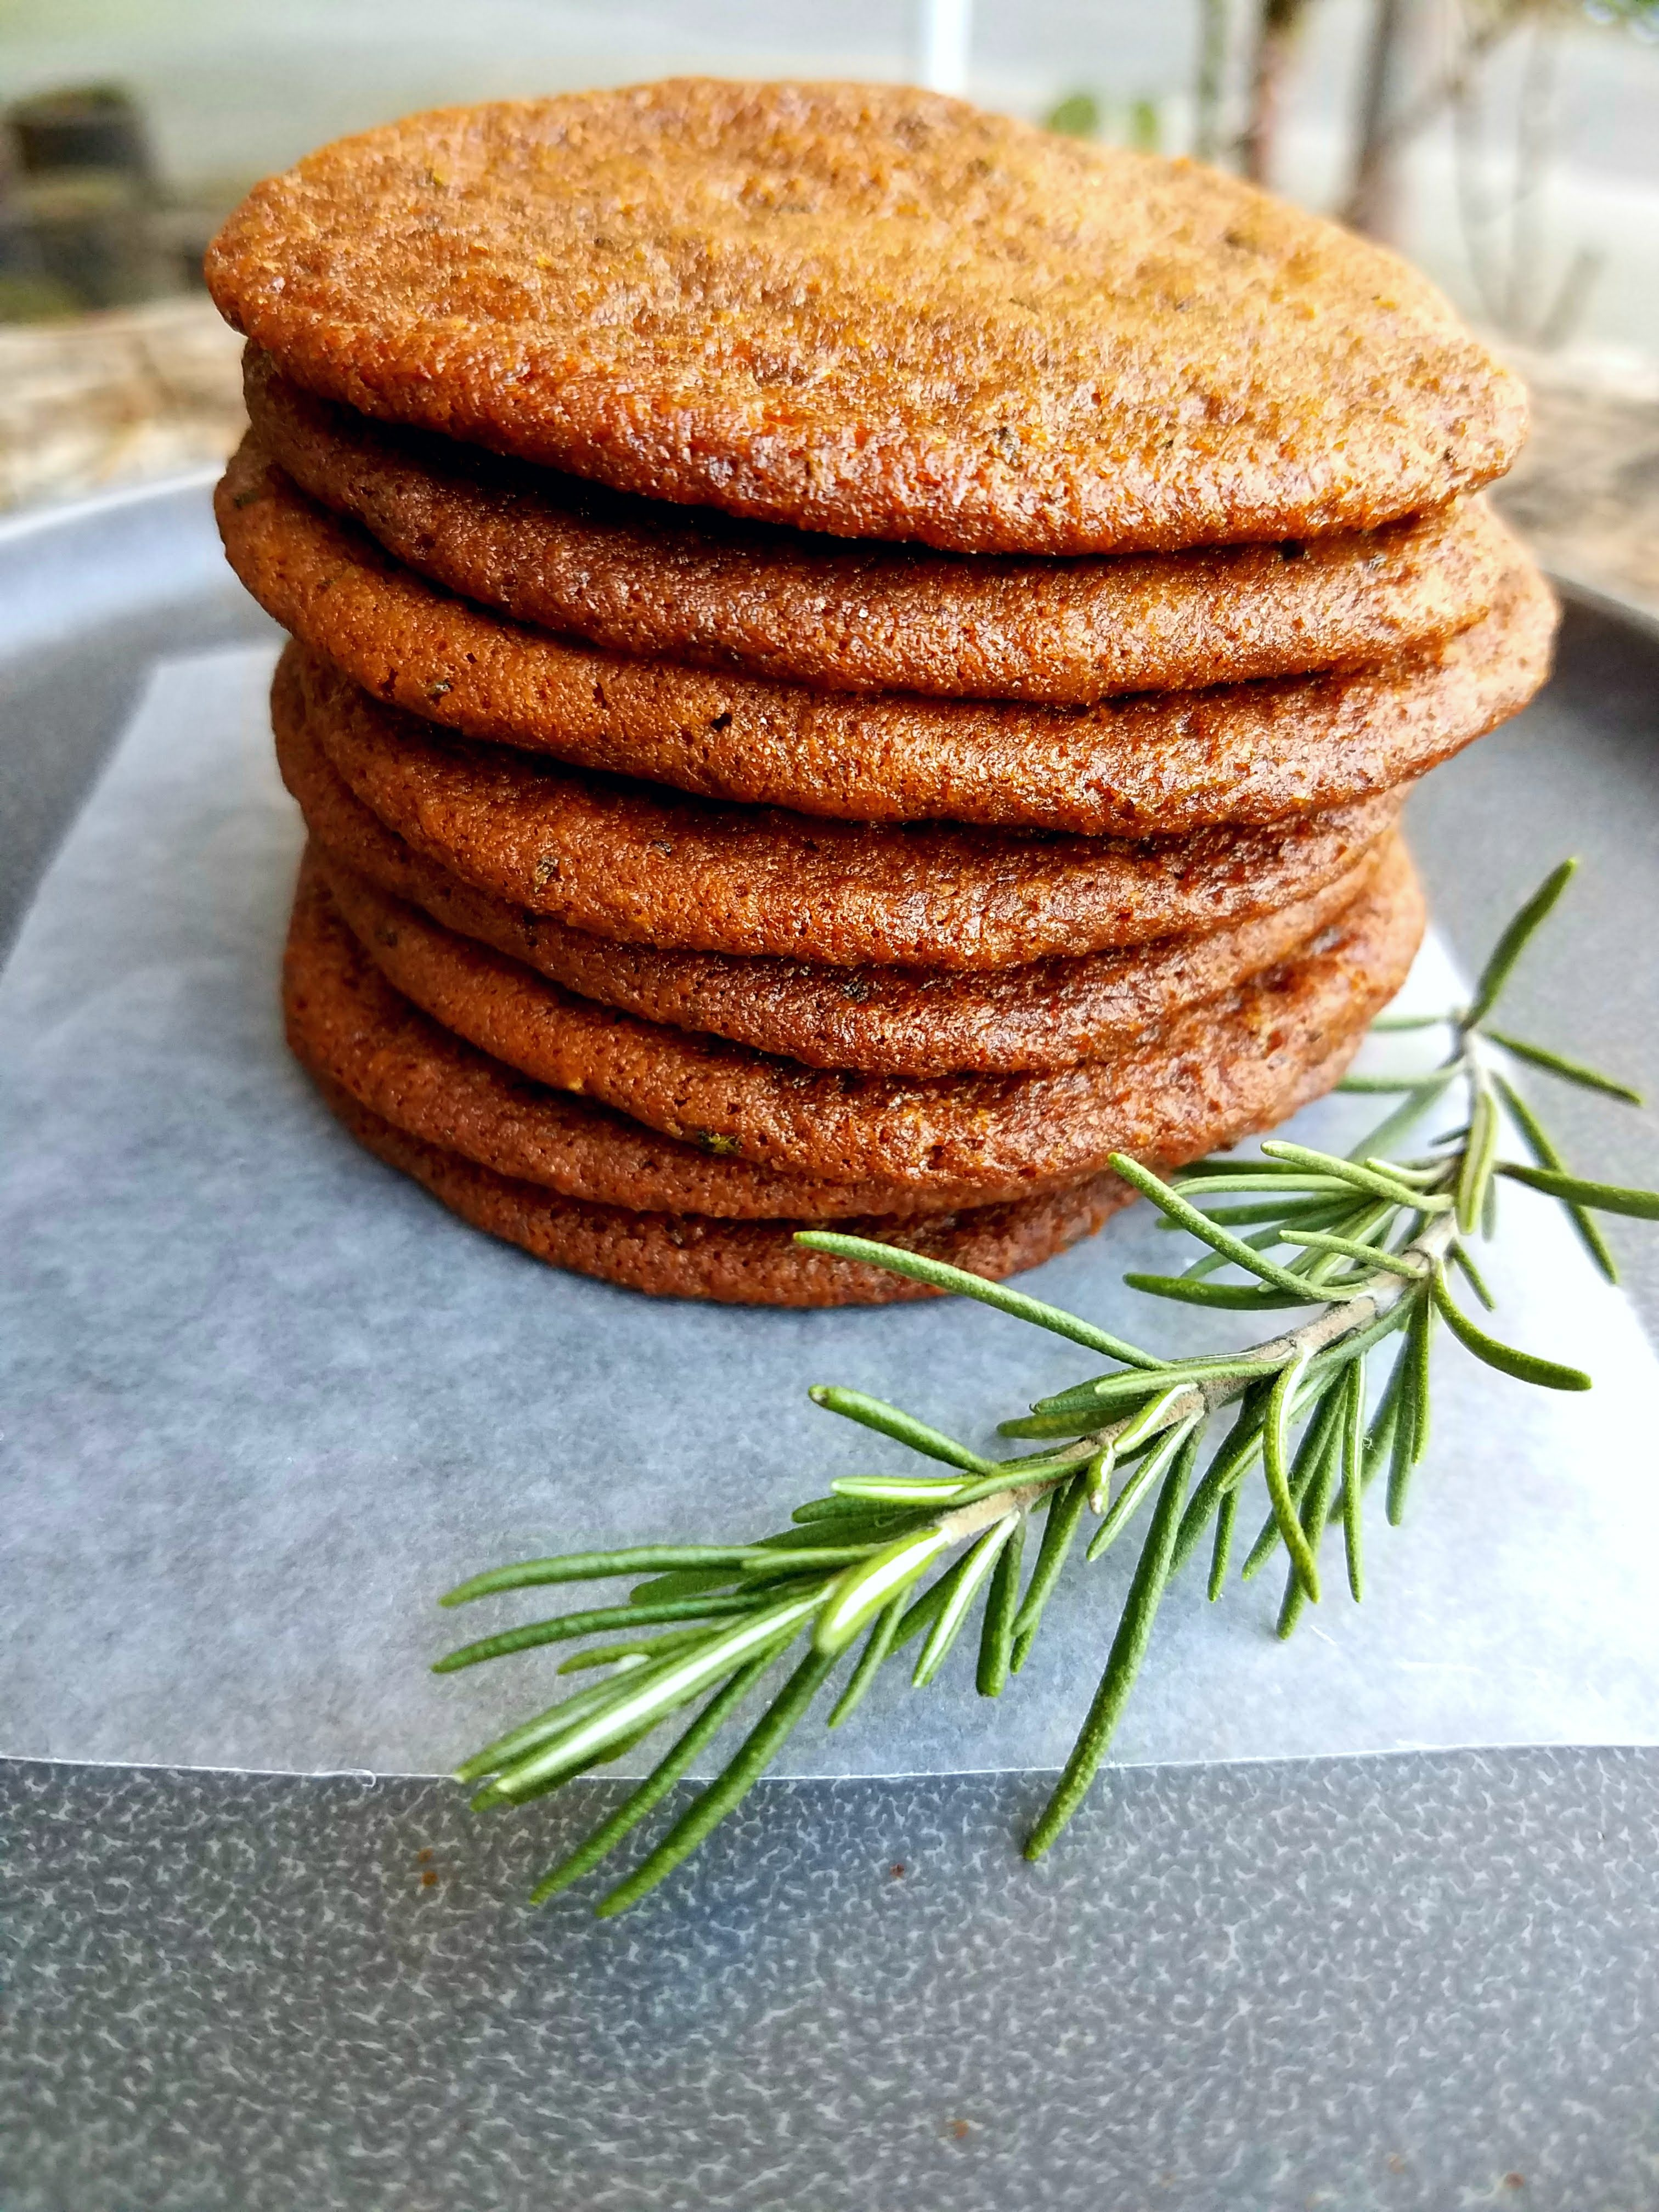 Baked To Perfection: Herb-Lace Your Holiday Cookies with Ginger and Rosemary